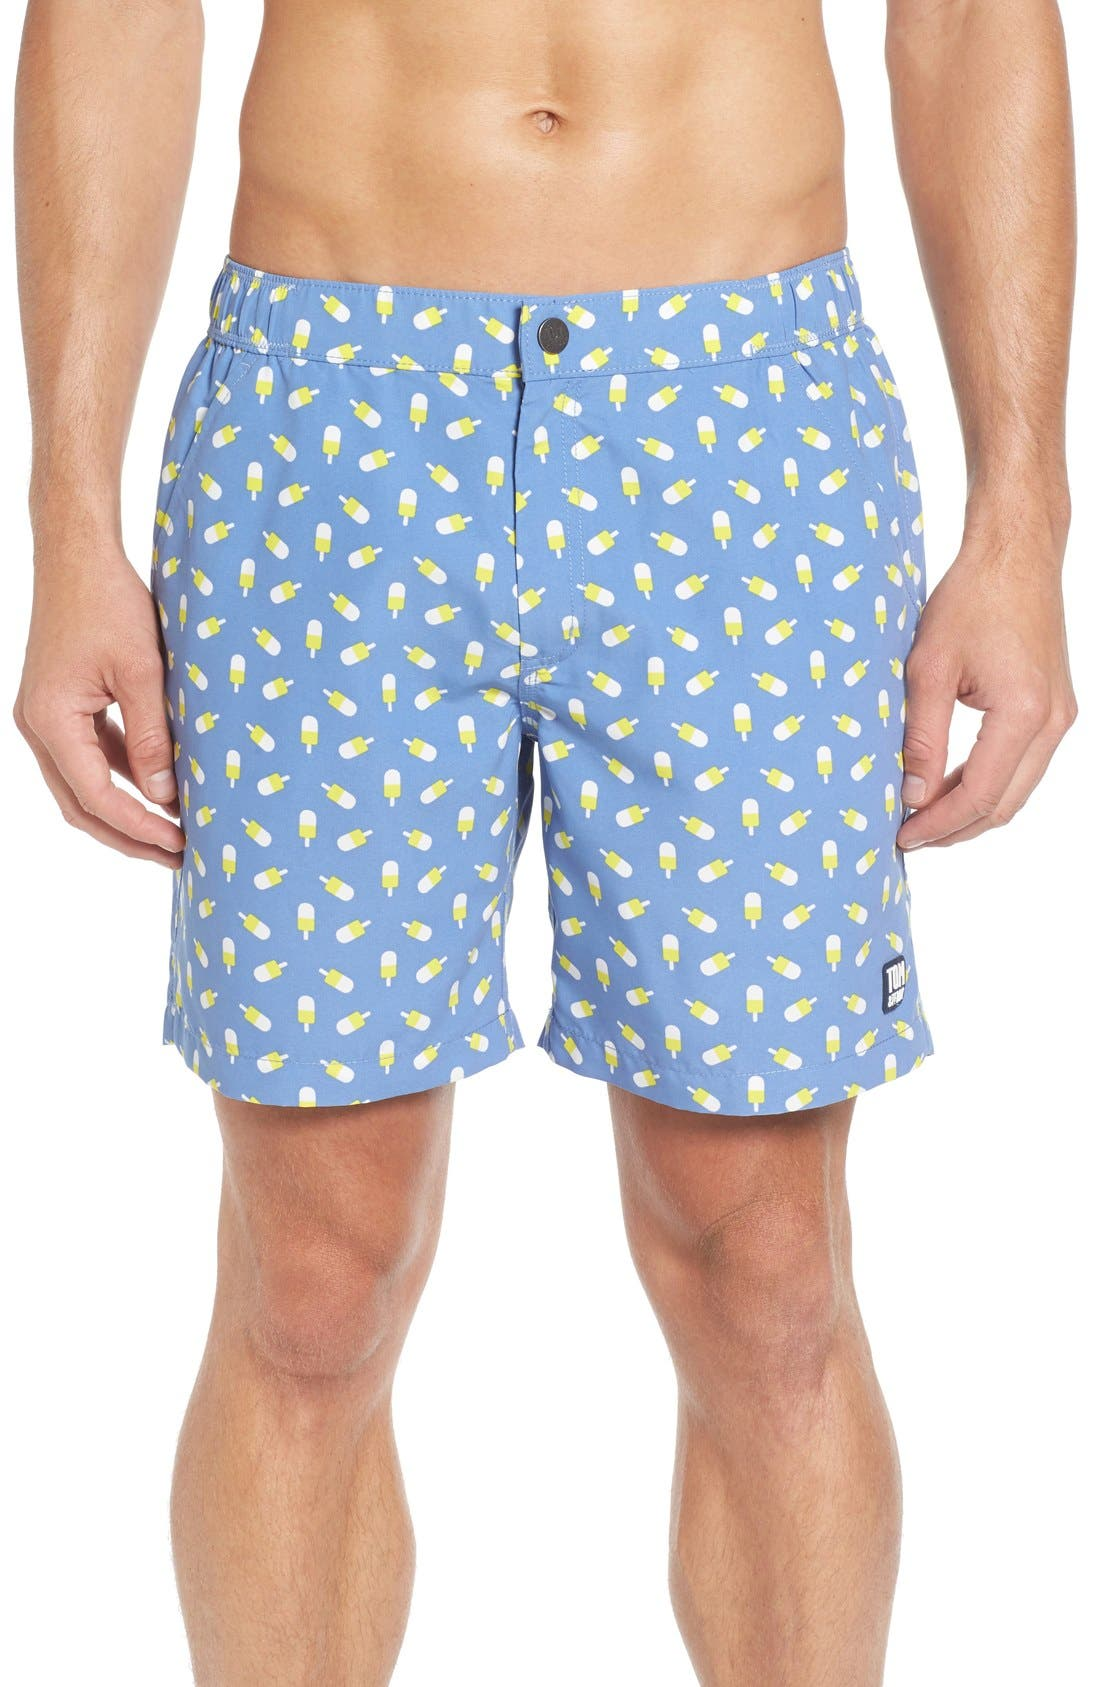 TOM & TEDDY Ice Lolly Print Swim Trunks